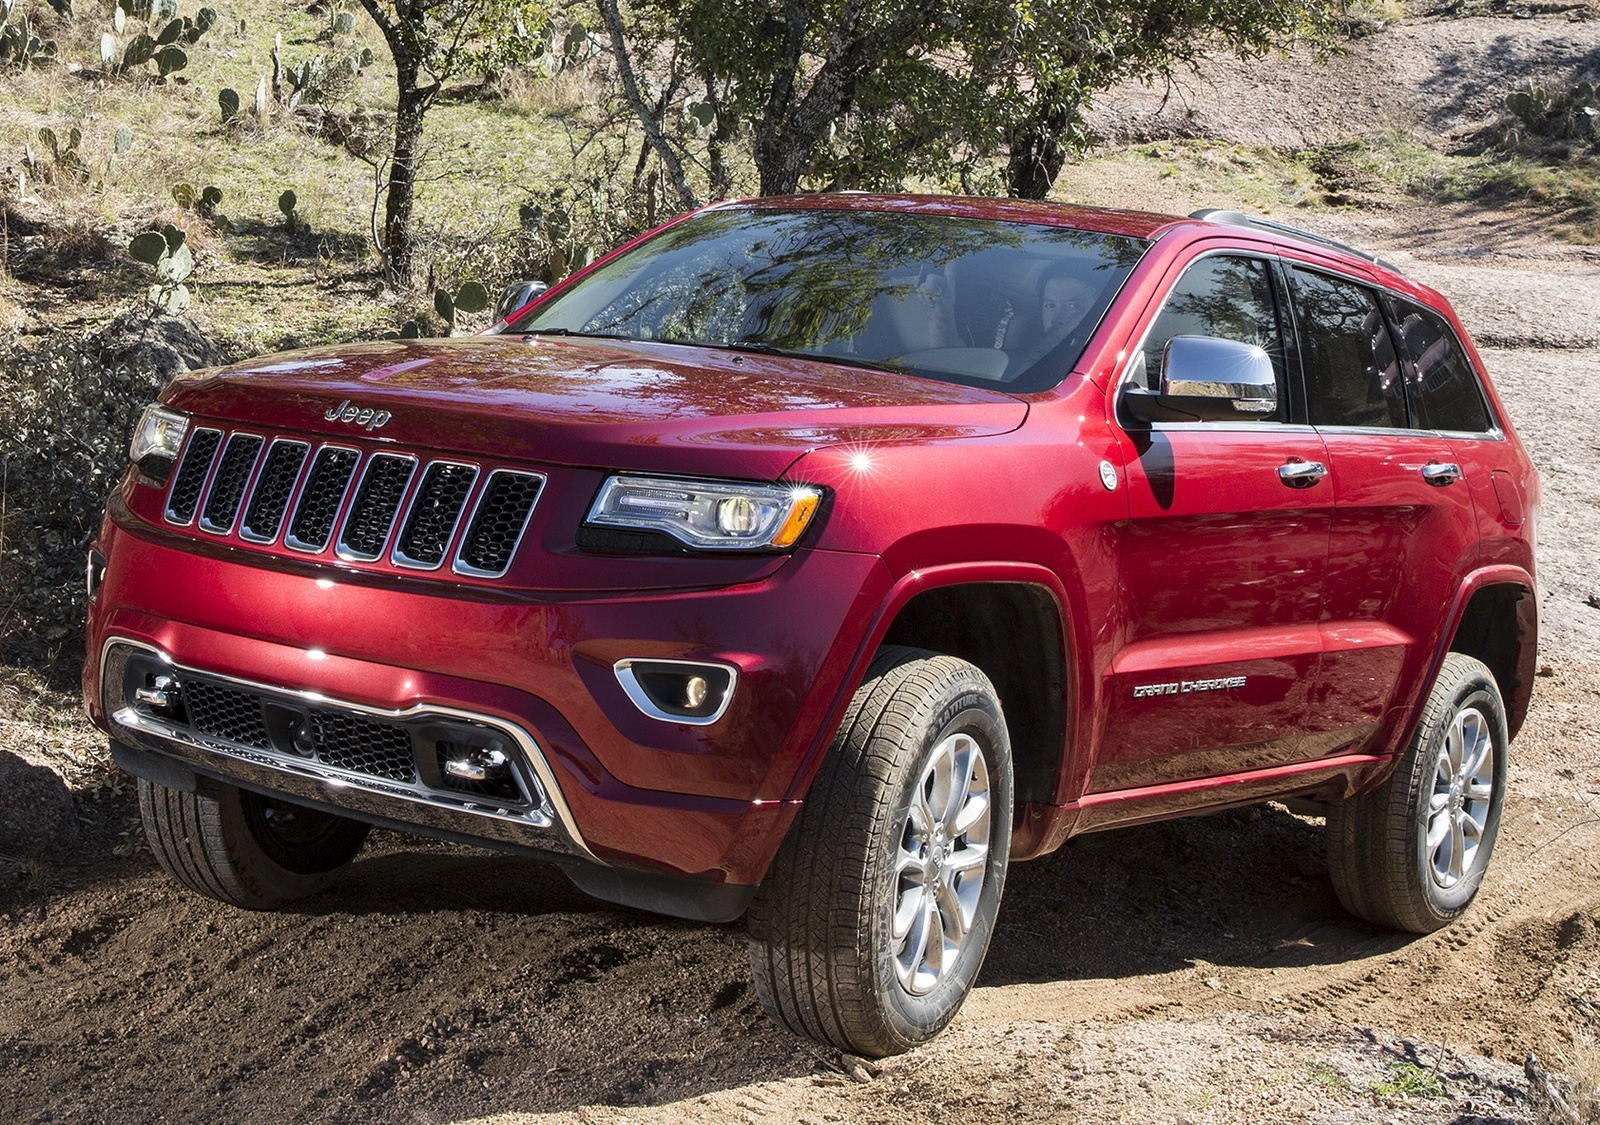 The 2015 Jeep Grand Cherokee is the brand's halo car, offering a long